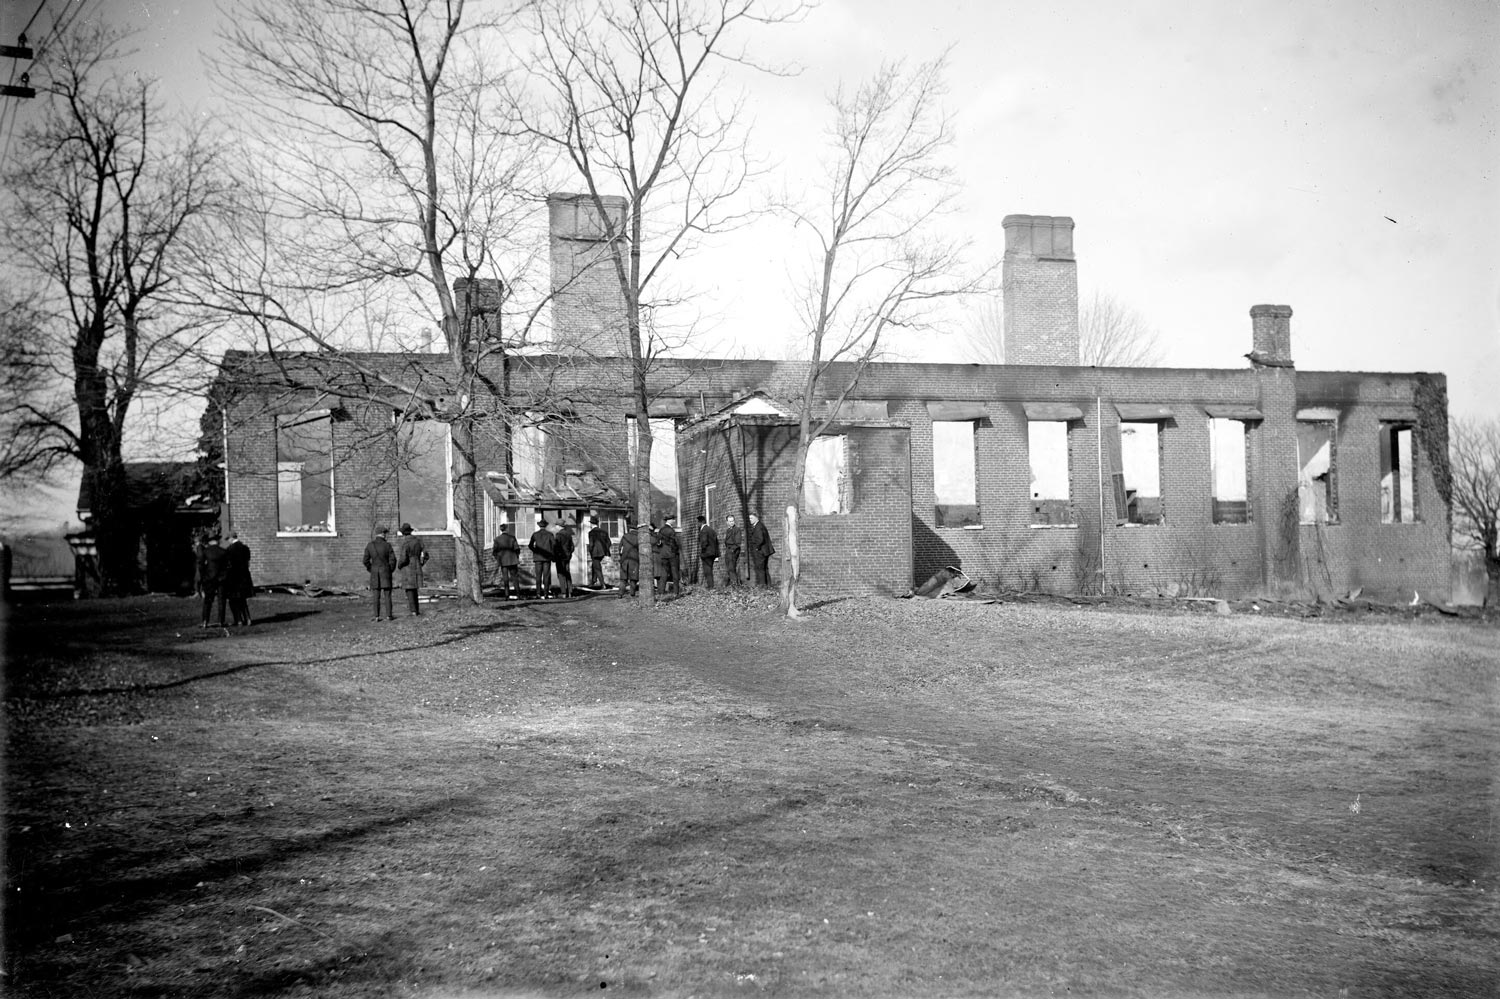 Rufus Holsinger, a prolific local photographer, captured this image of the smoking ruins of a chemical laboratory on Grounds. Holsinger's collection is housed at the University Library.